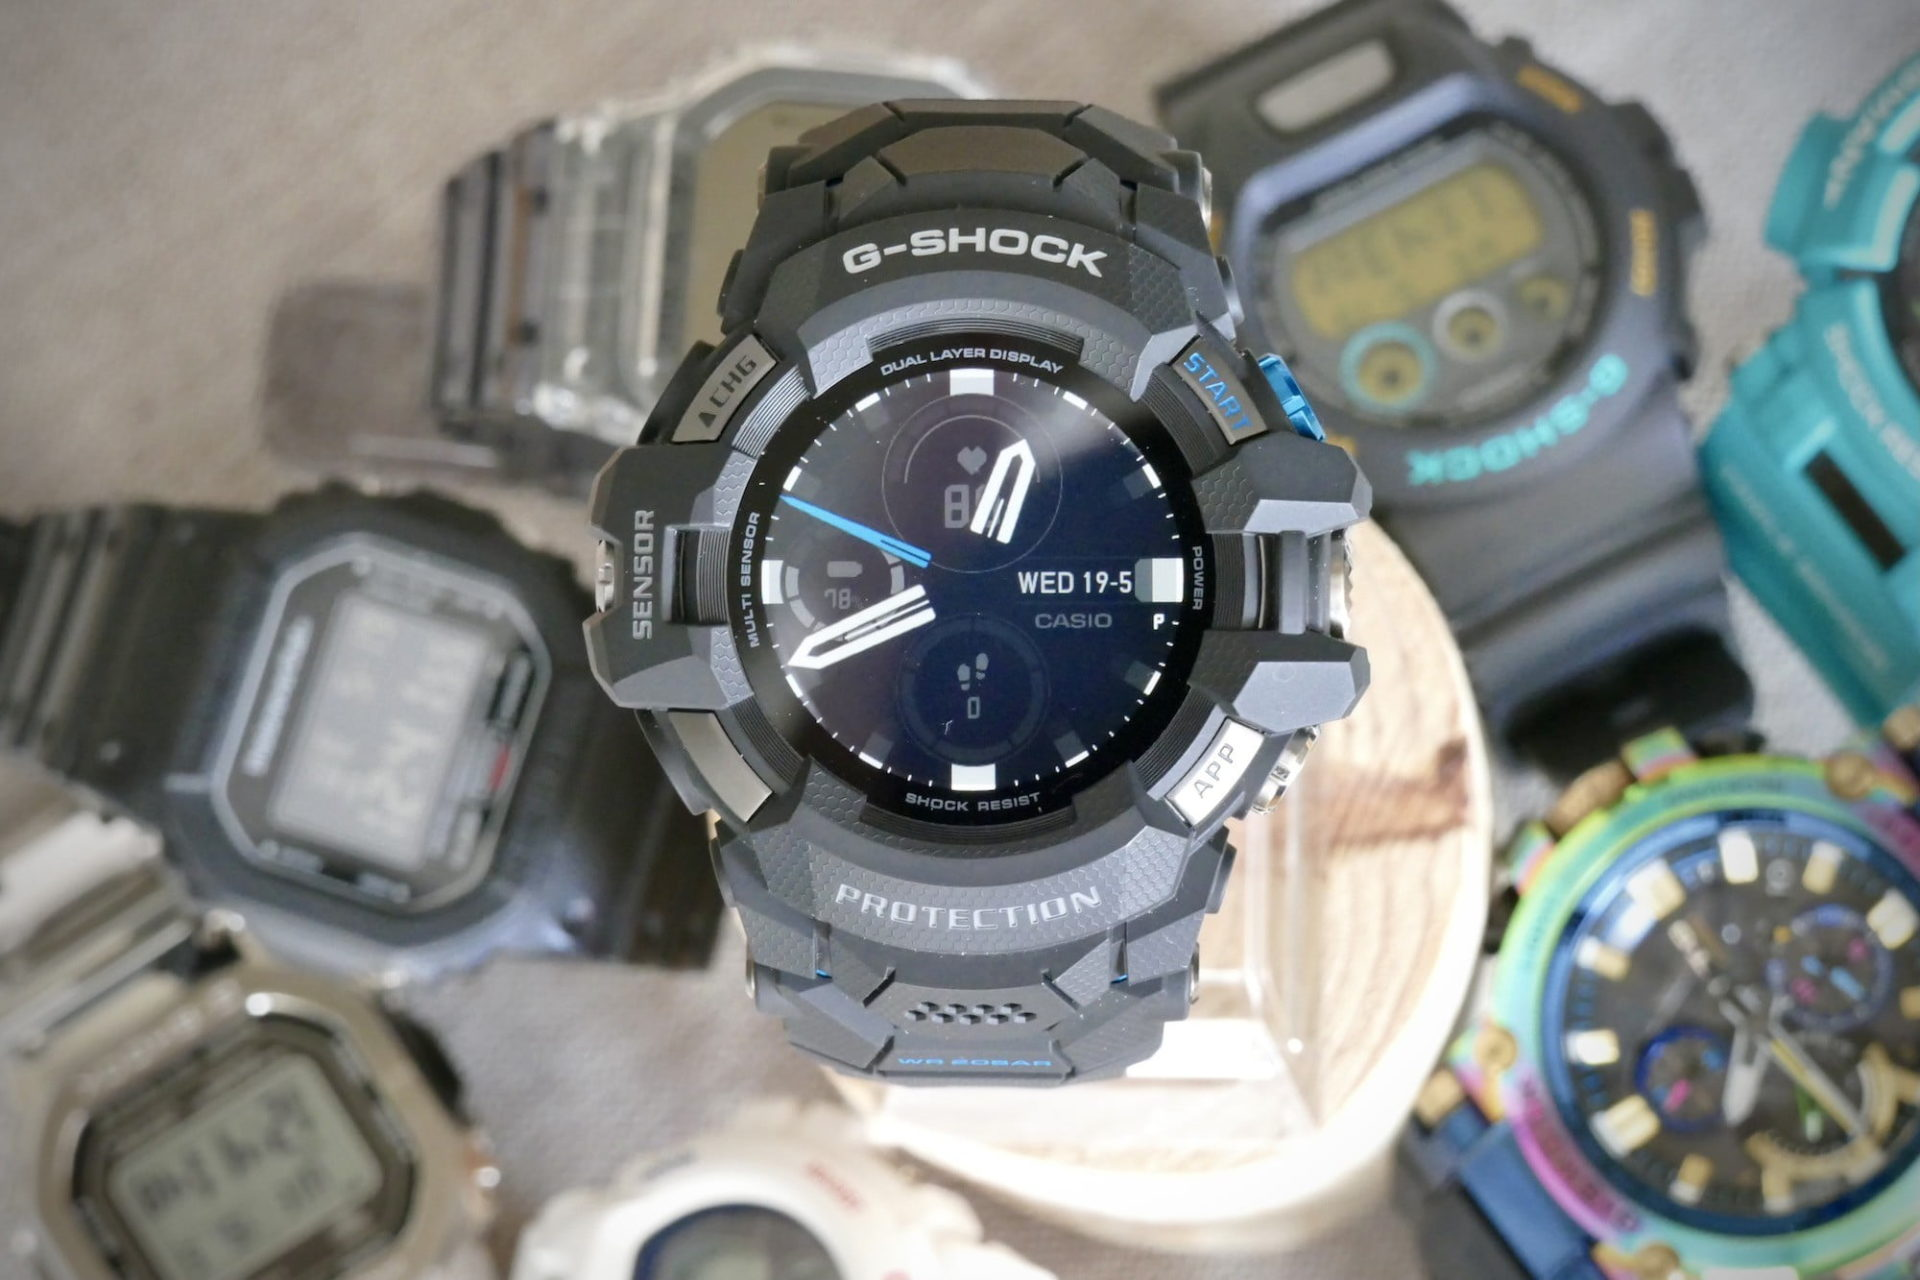 casio g shock gsw h1000 smartwatch review analog face